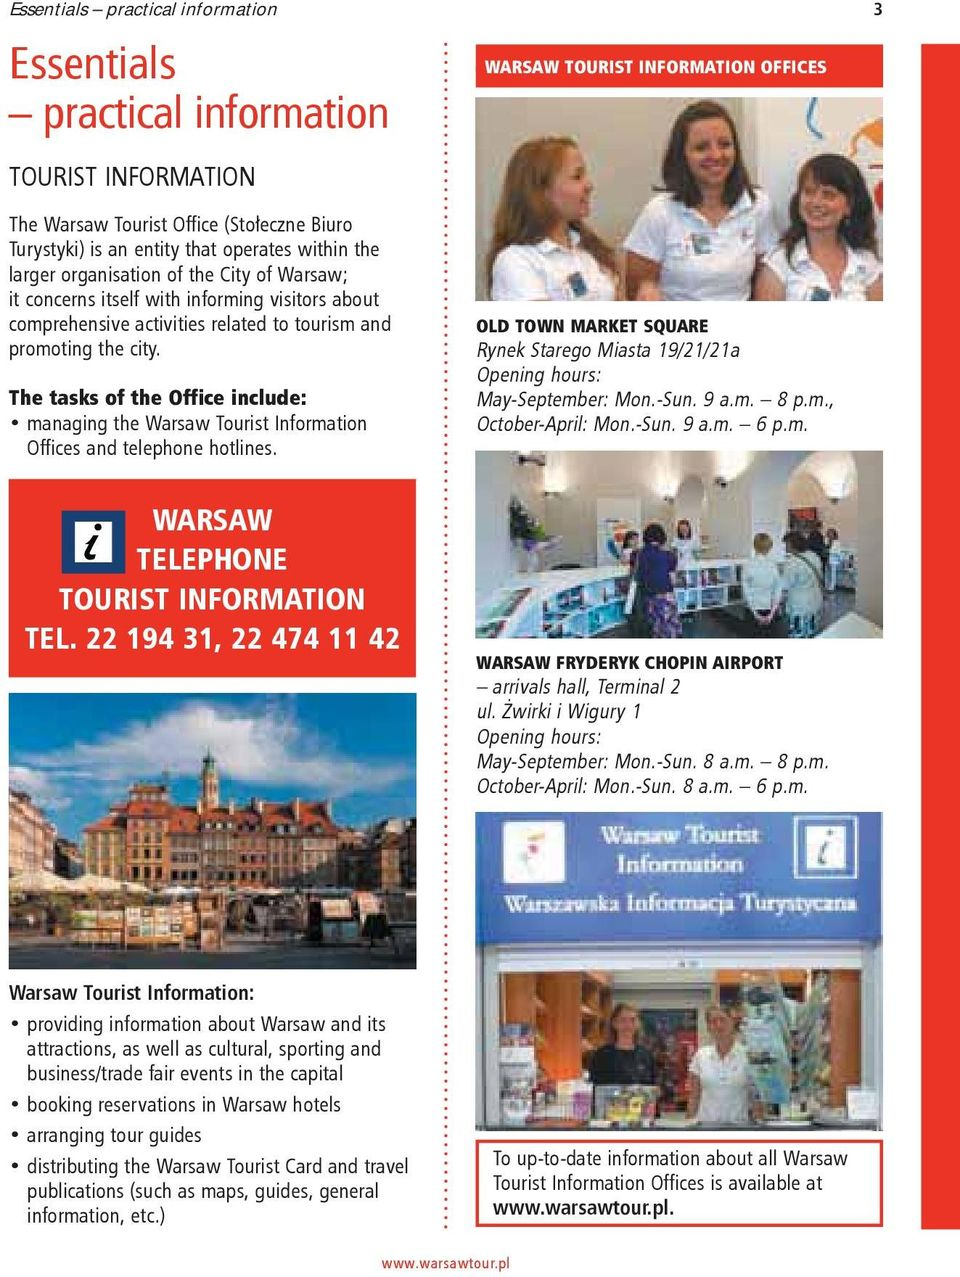 The tasks of the Office include: managing the Warsaw Tourist Information Offices and telephone hotlines.